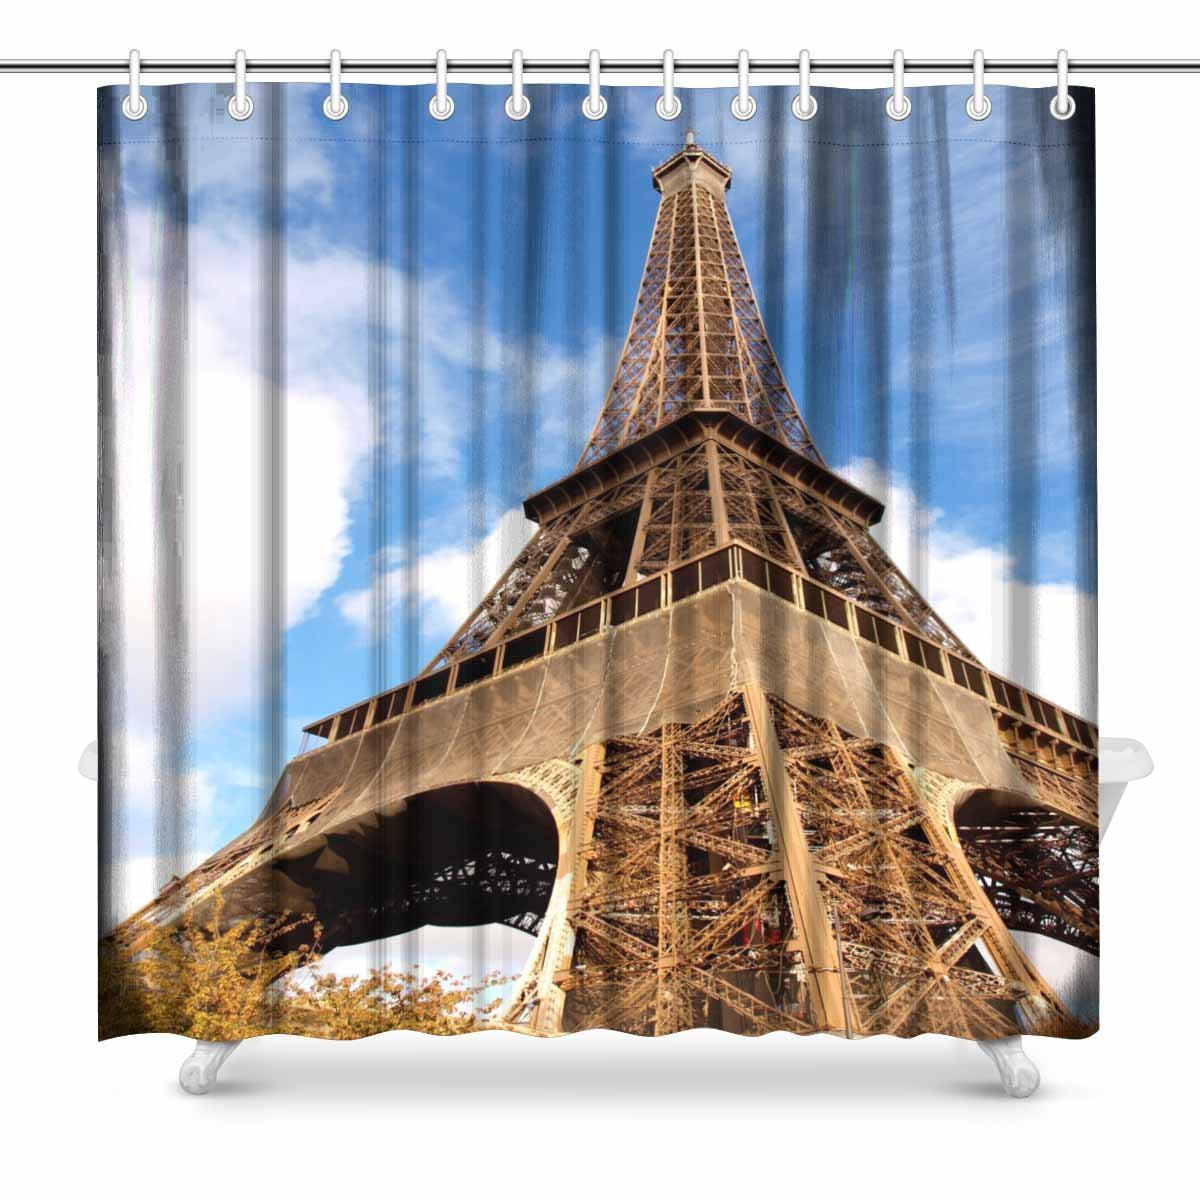 Us 10 91 9 Off Aplysia Eiffel Tower In Paris Fabric Bathroom Shower Curtain Decor Set With Hooks 72 X 72 Inches In Shower Curtains From Home